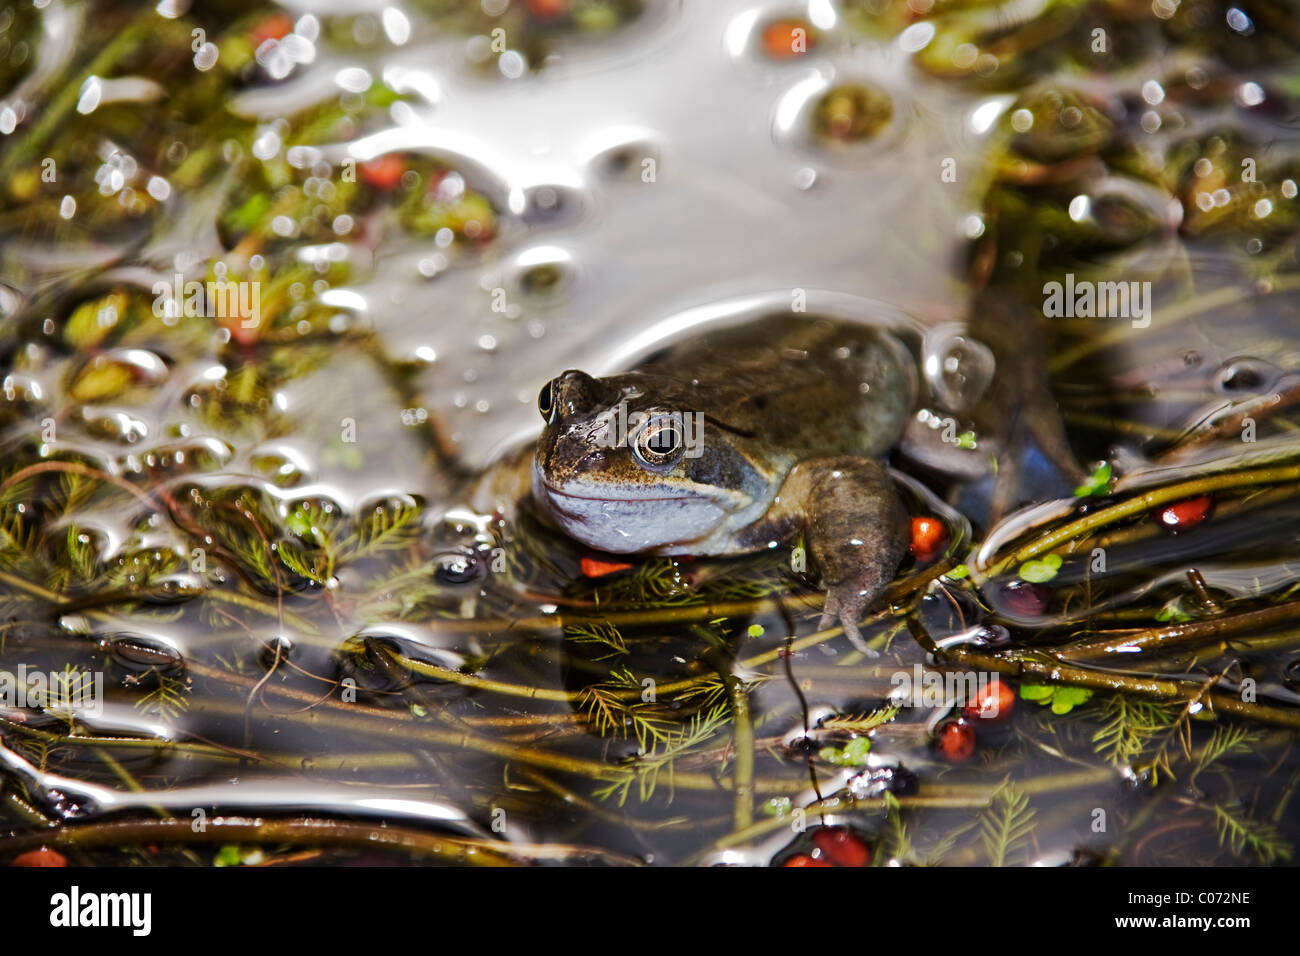 Common Frogs (Rana Temporaria) in pond, England - Stock Image